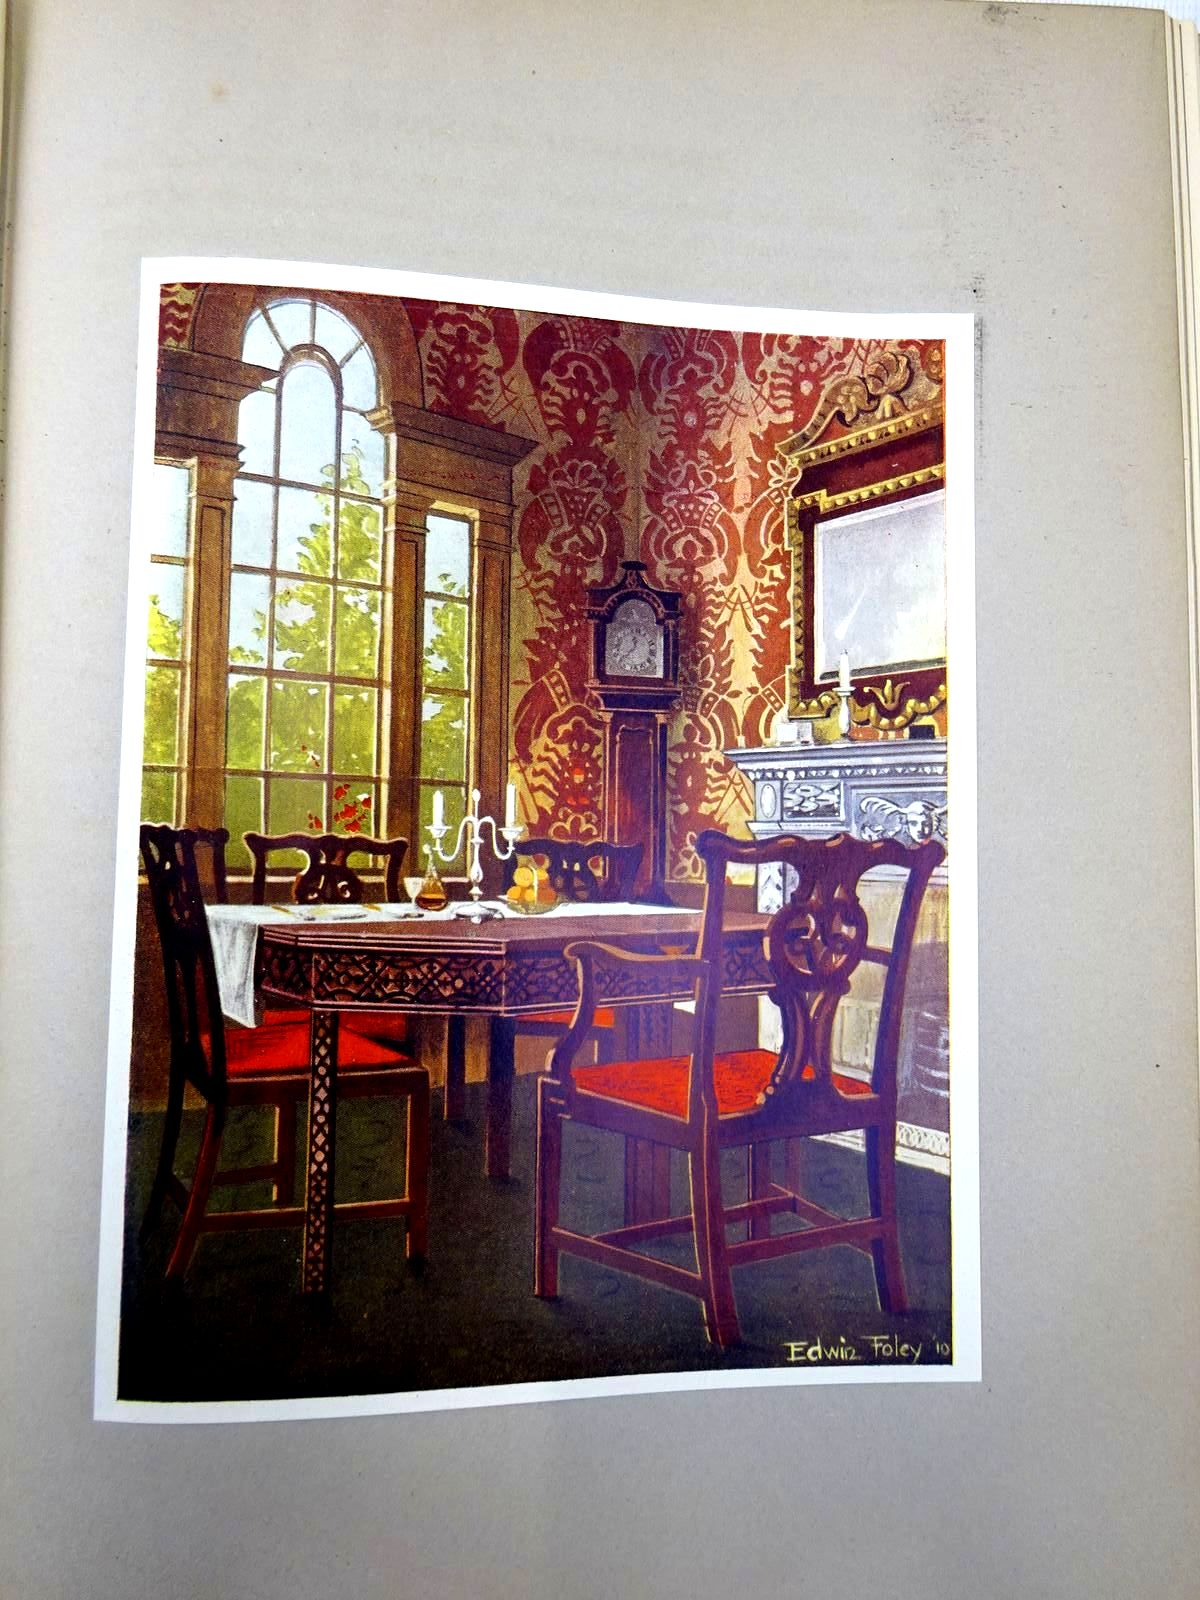 Photo of THE BOOK OF DECORATIVE FURNITURE ITS FORM, COLOUR, & HISTORY (2 VOLUMES) written by Foley, Edwin illustrated by Foley, Edwin<br />et al., published by T.C. & E.C. Jack Ltd. (STOCK CODE: 2126391)  for sale by Stella & Rose's Books